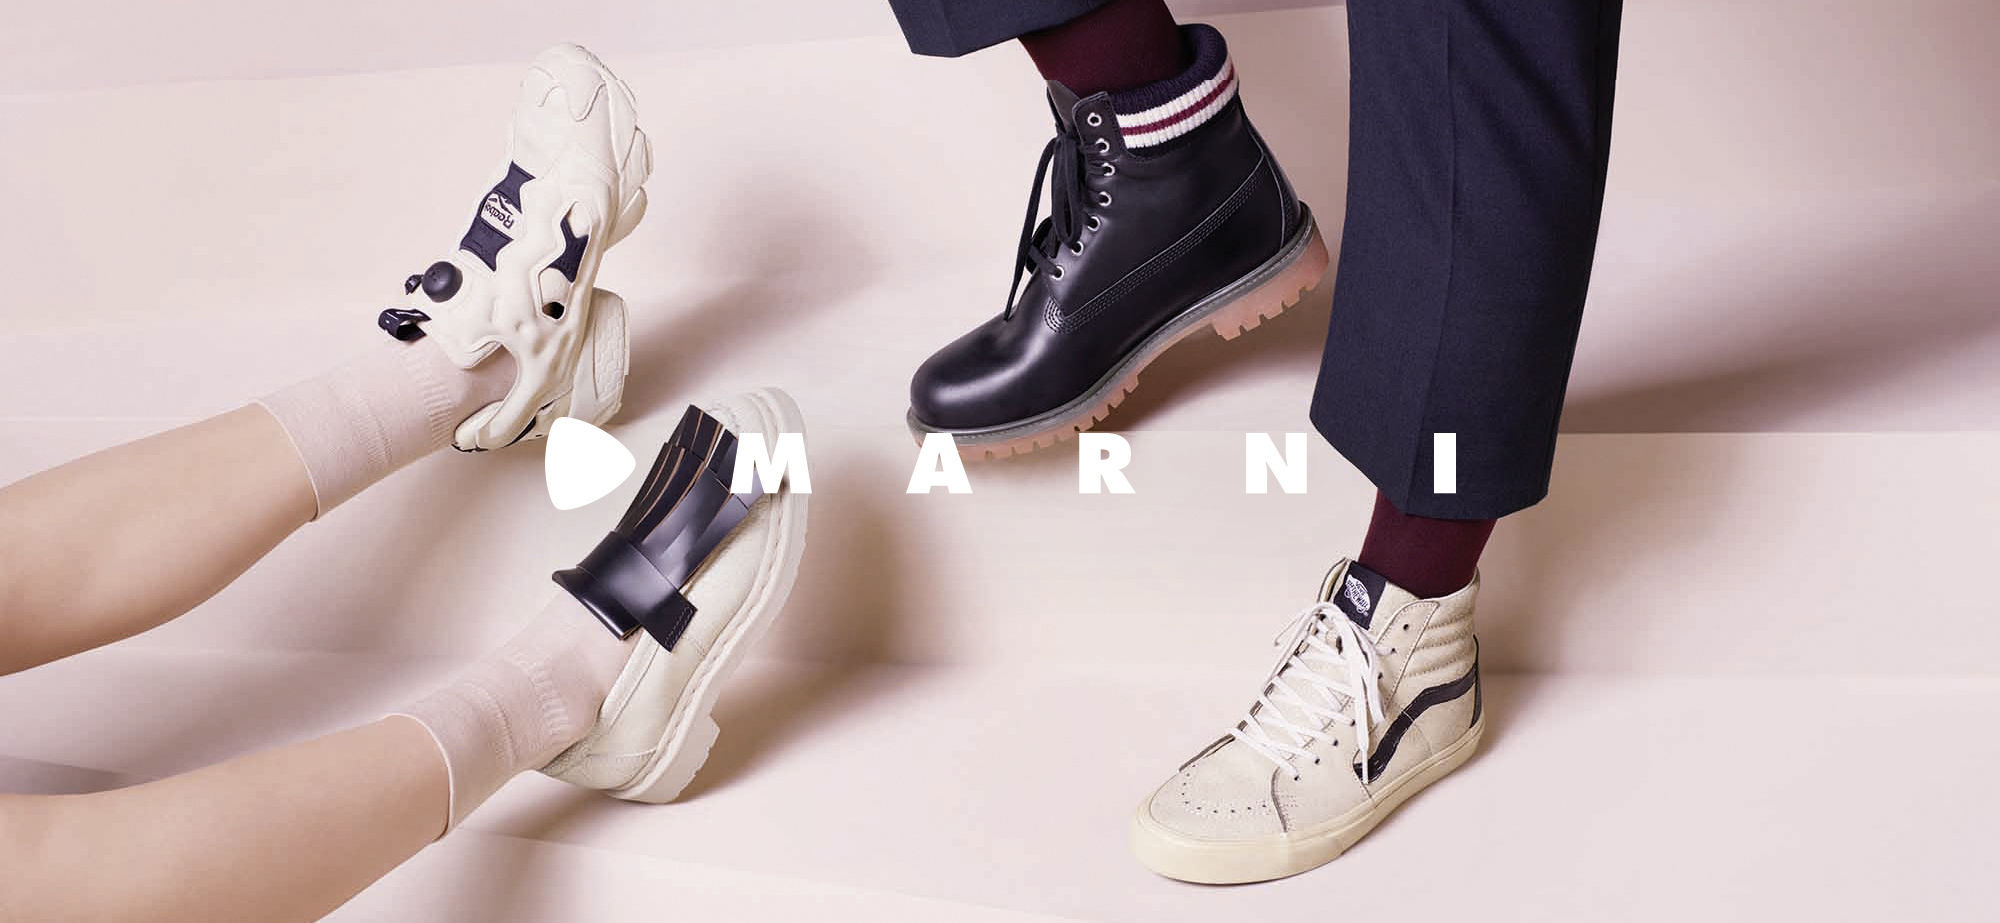 FLORIAN HUCKER CREATIVE DIRECTOR for MARNI x ZALANDO